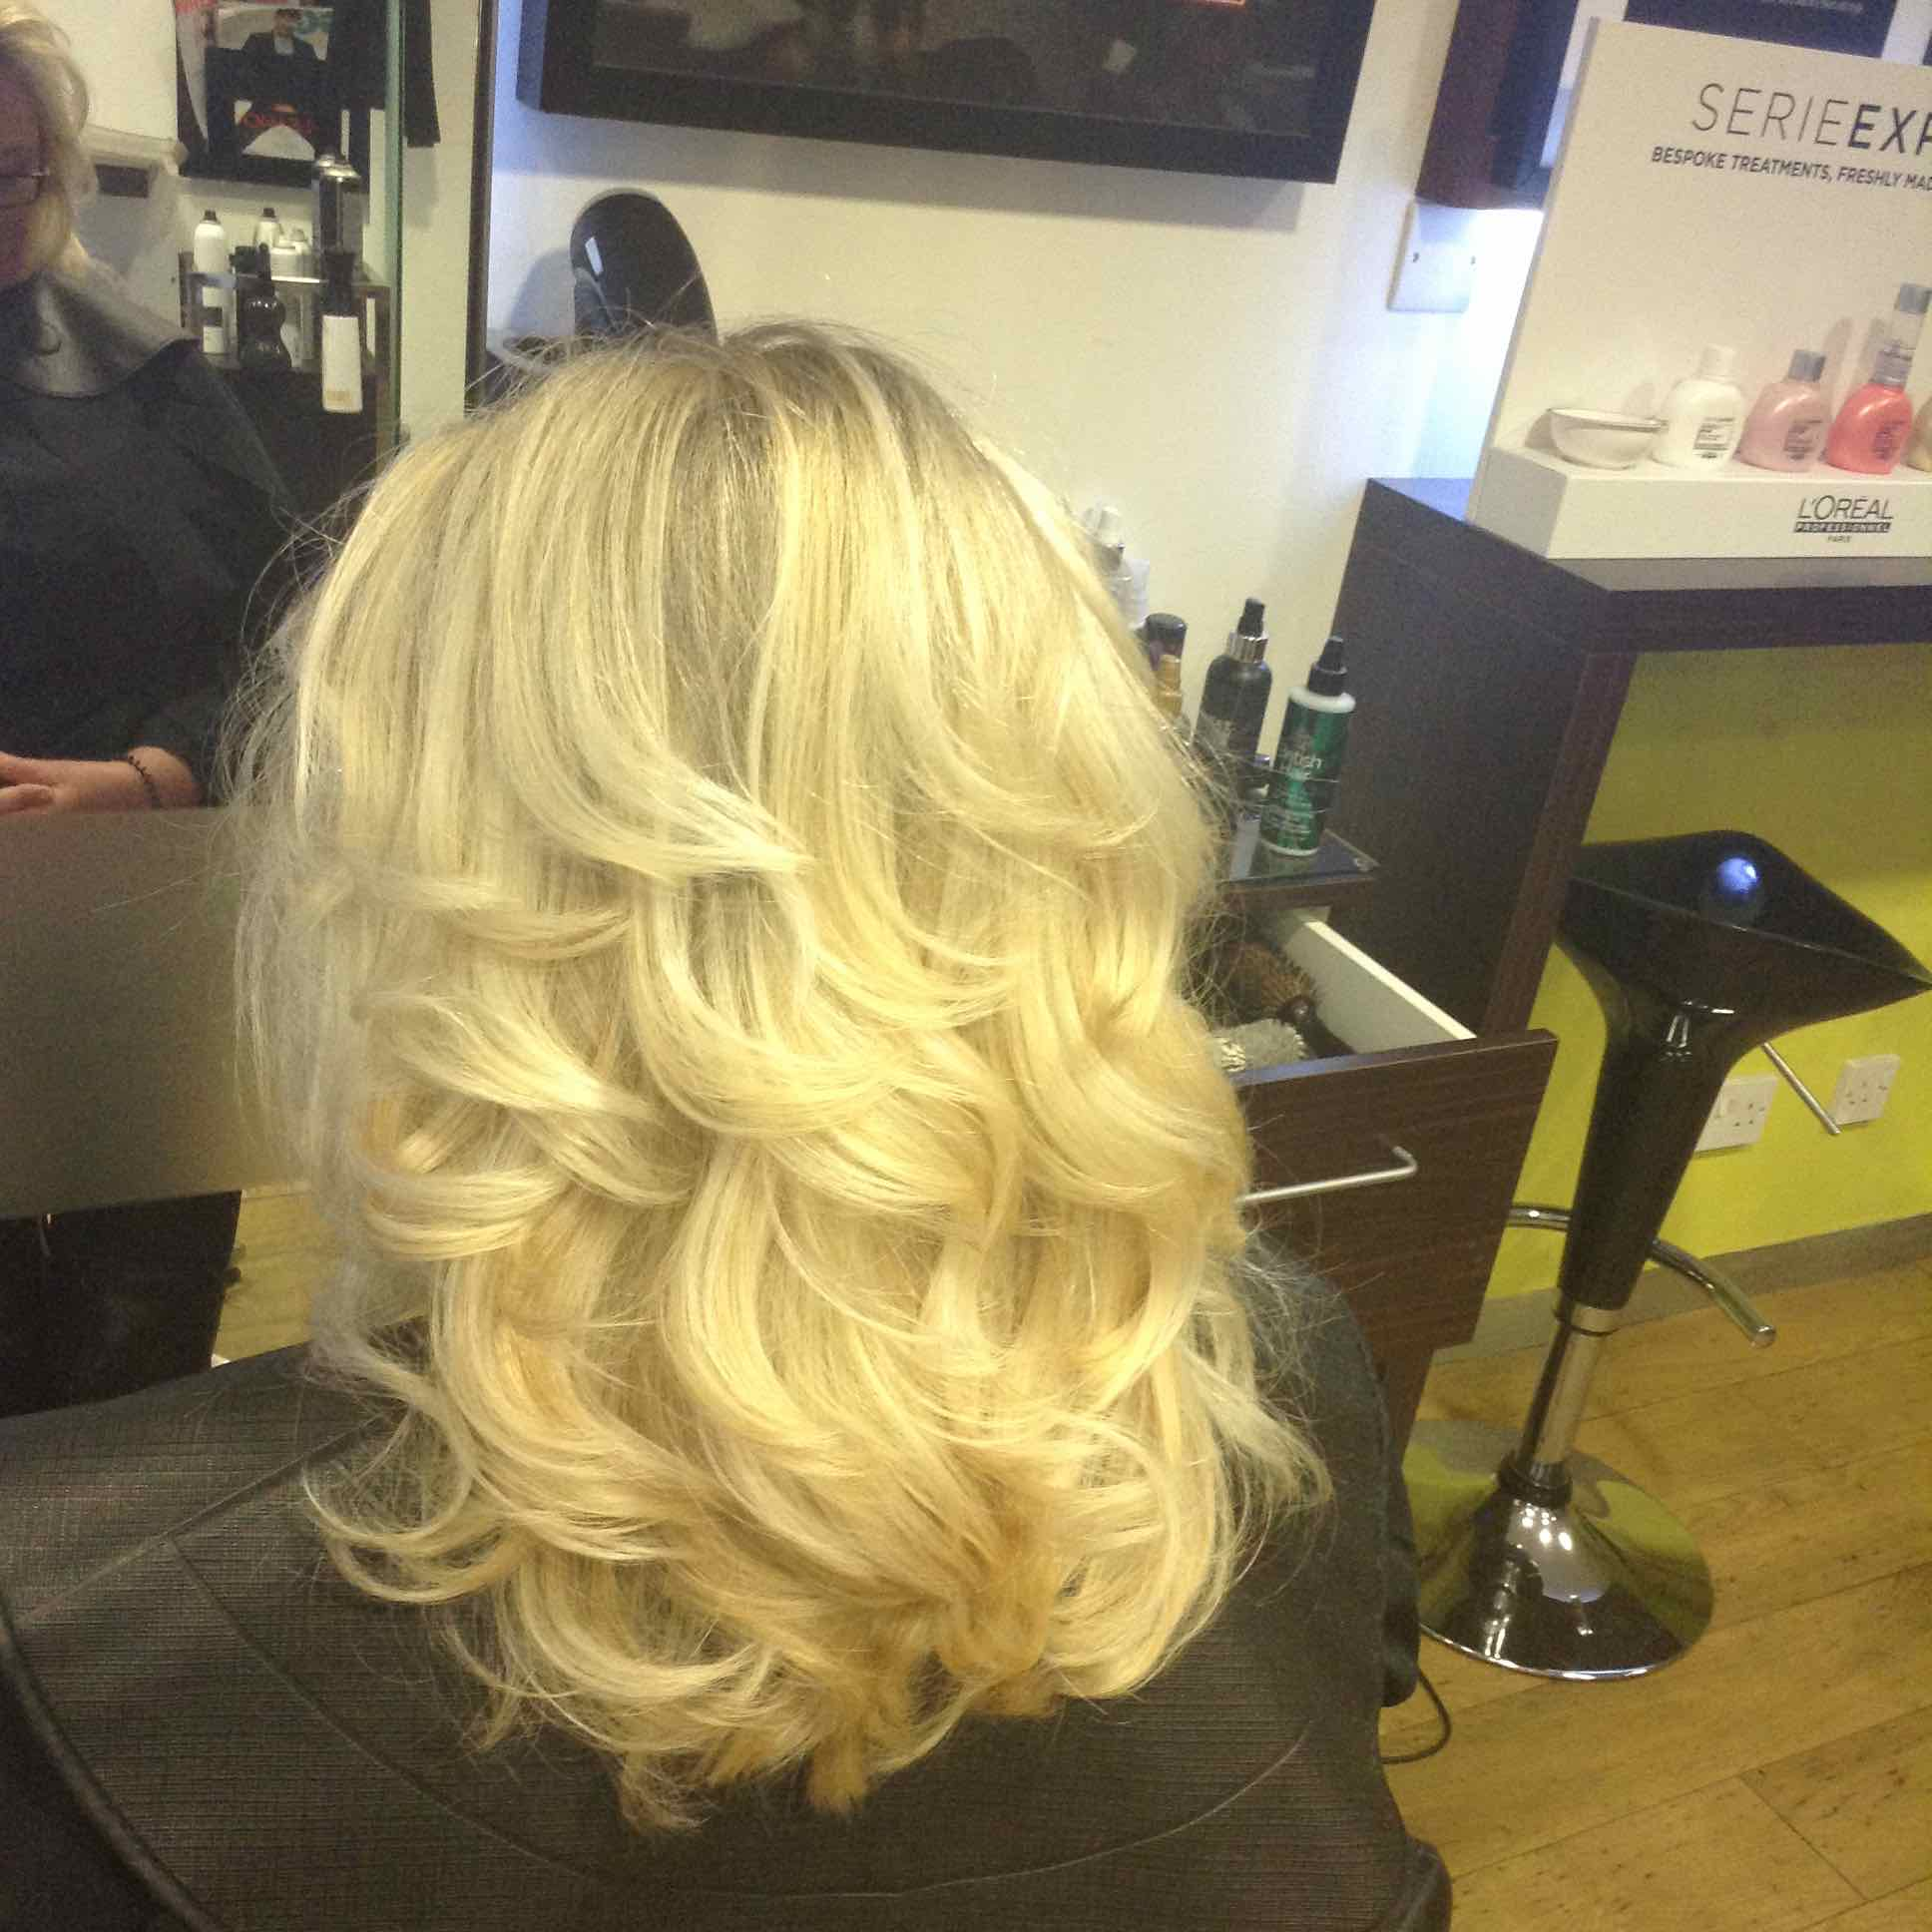 Christmas Hairstyles And Party Hair Ideas From Our Bristol Hairdressers